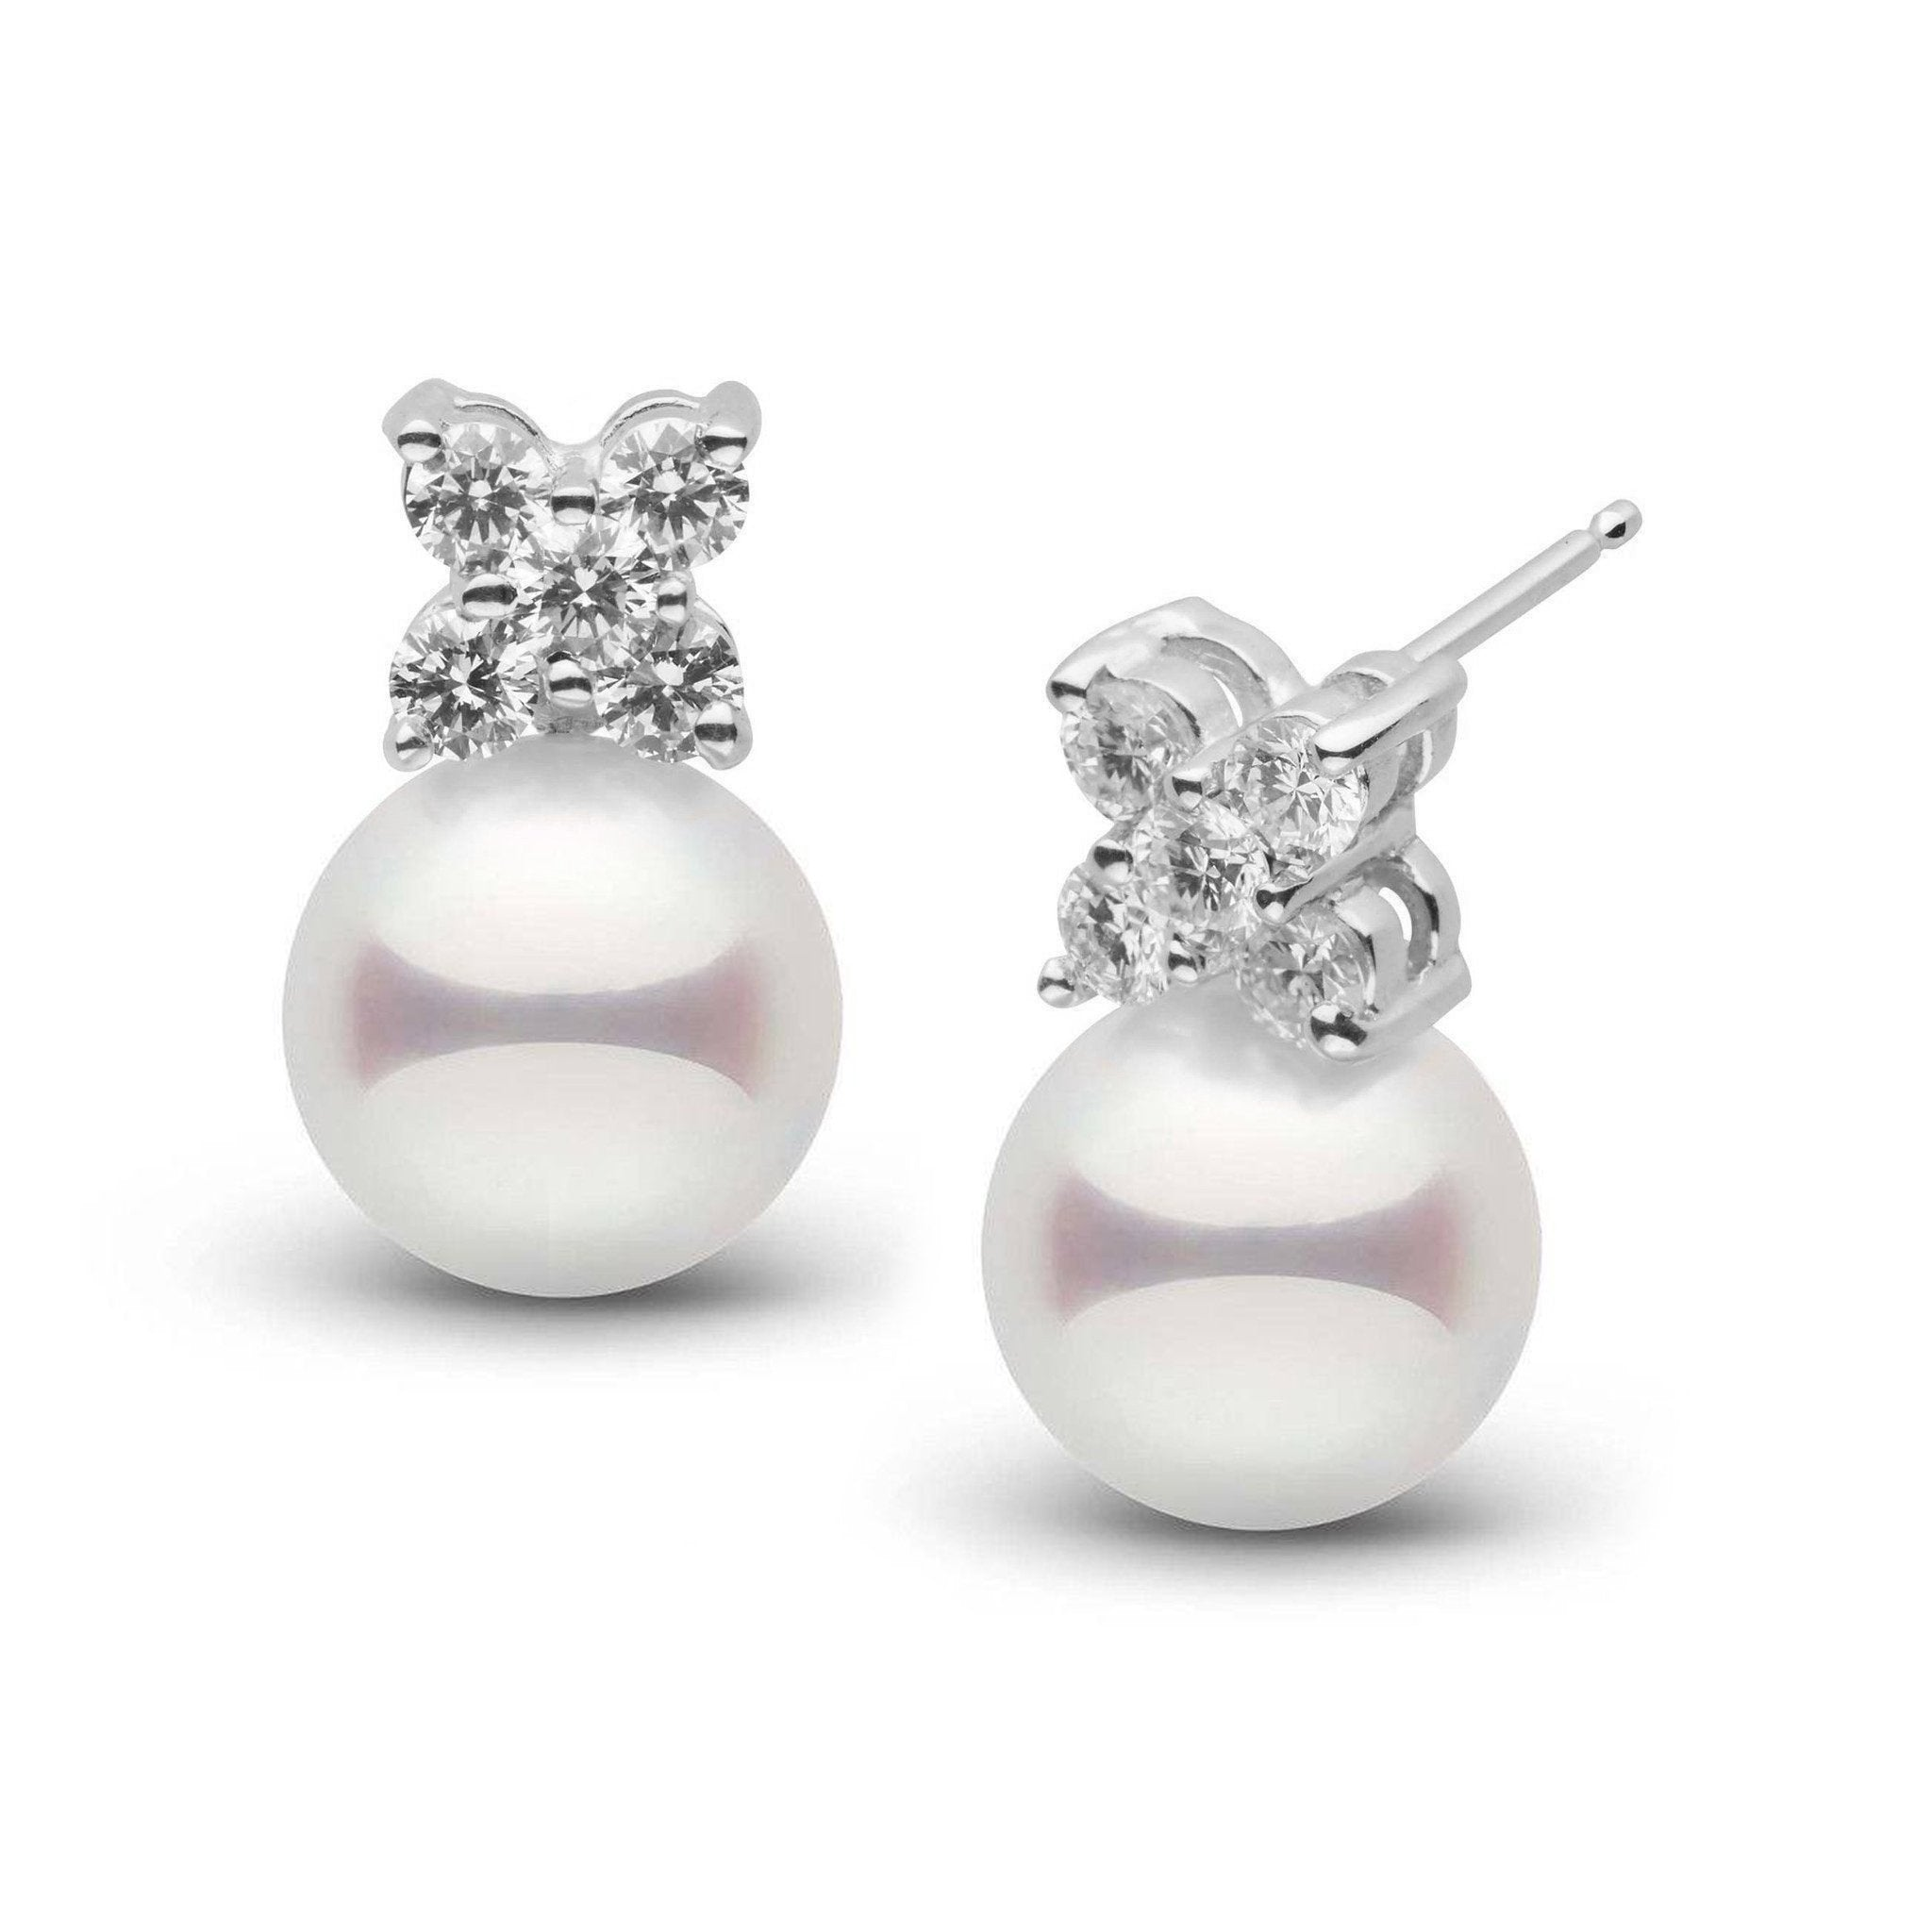 Kiss Collection White 9.0-9.5 mm Akoya Pearl and Diamond Earrings